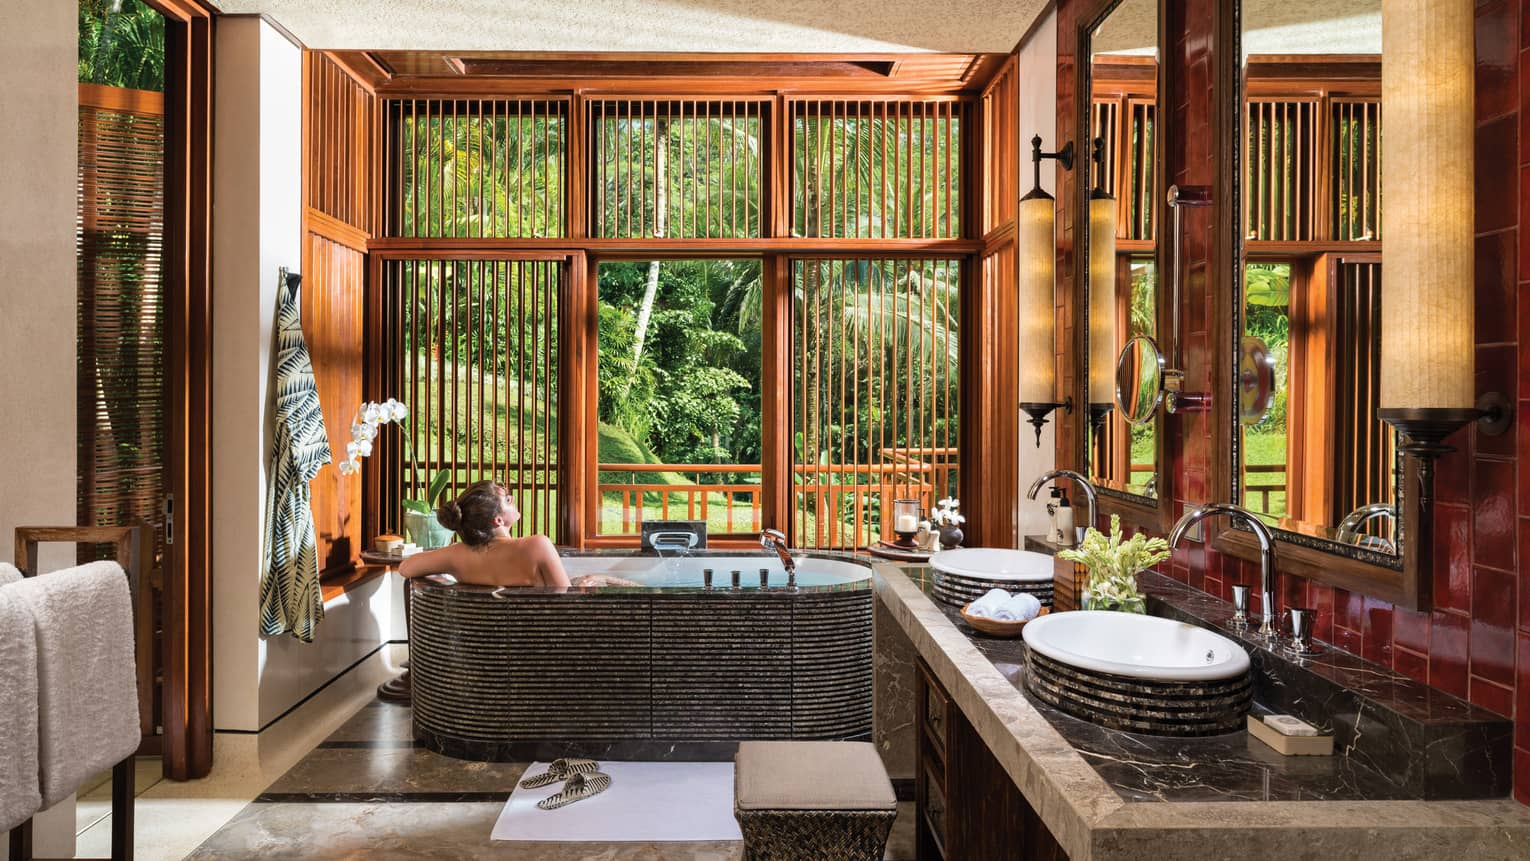 Woman with bare back relaxes in black freestanding spa tub near double sink, wood shutters open to lush garden view